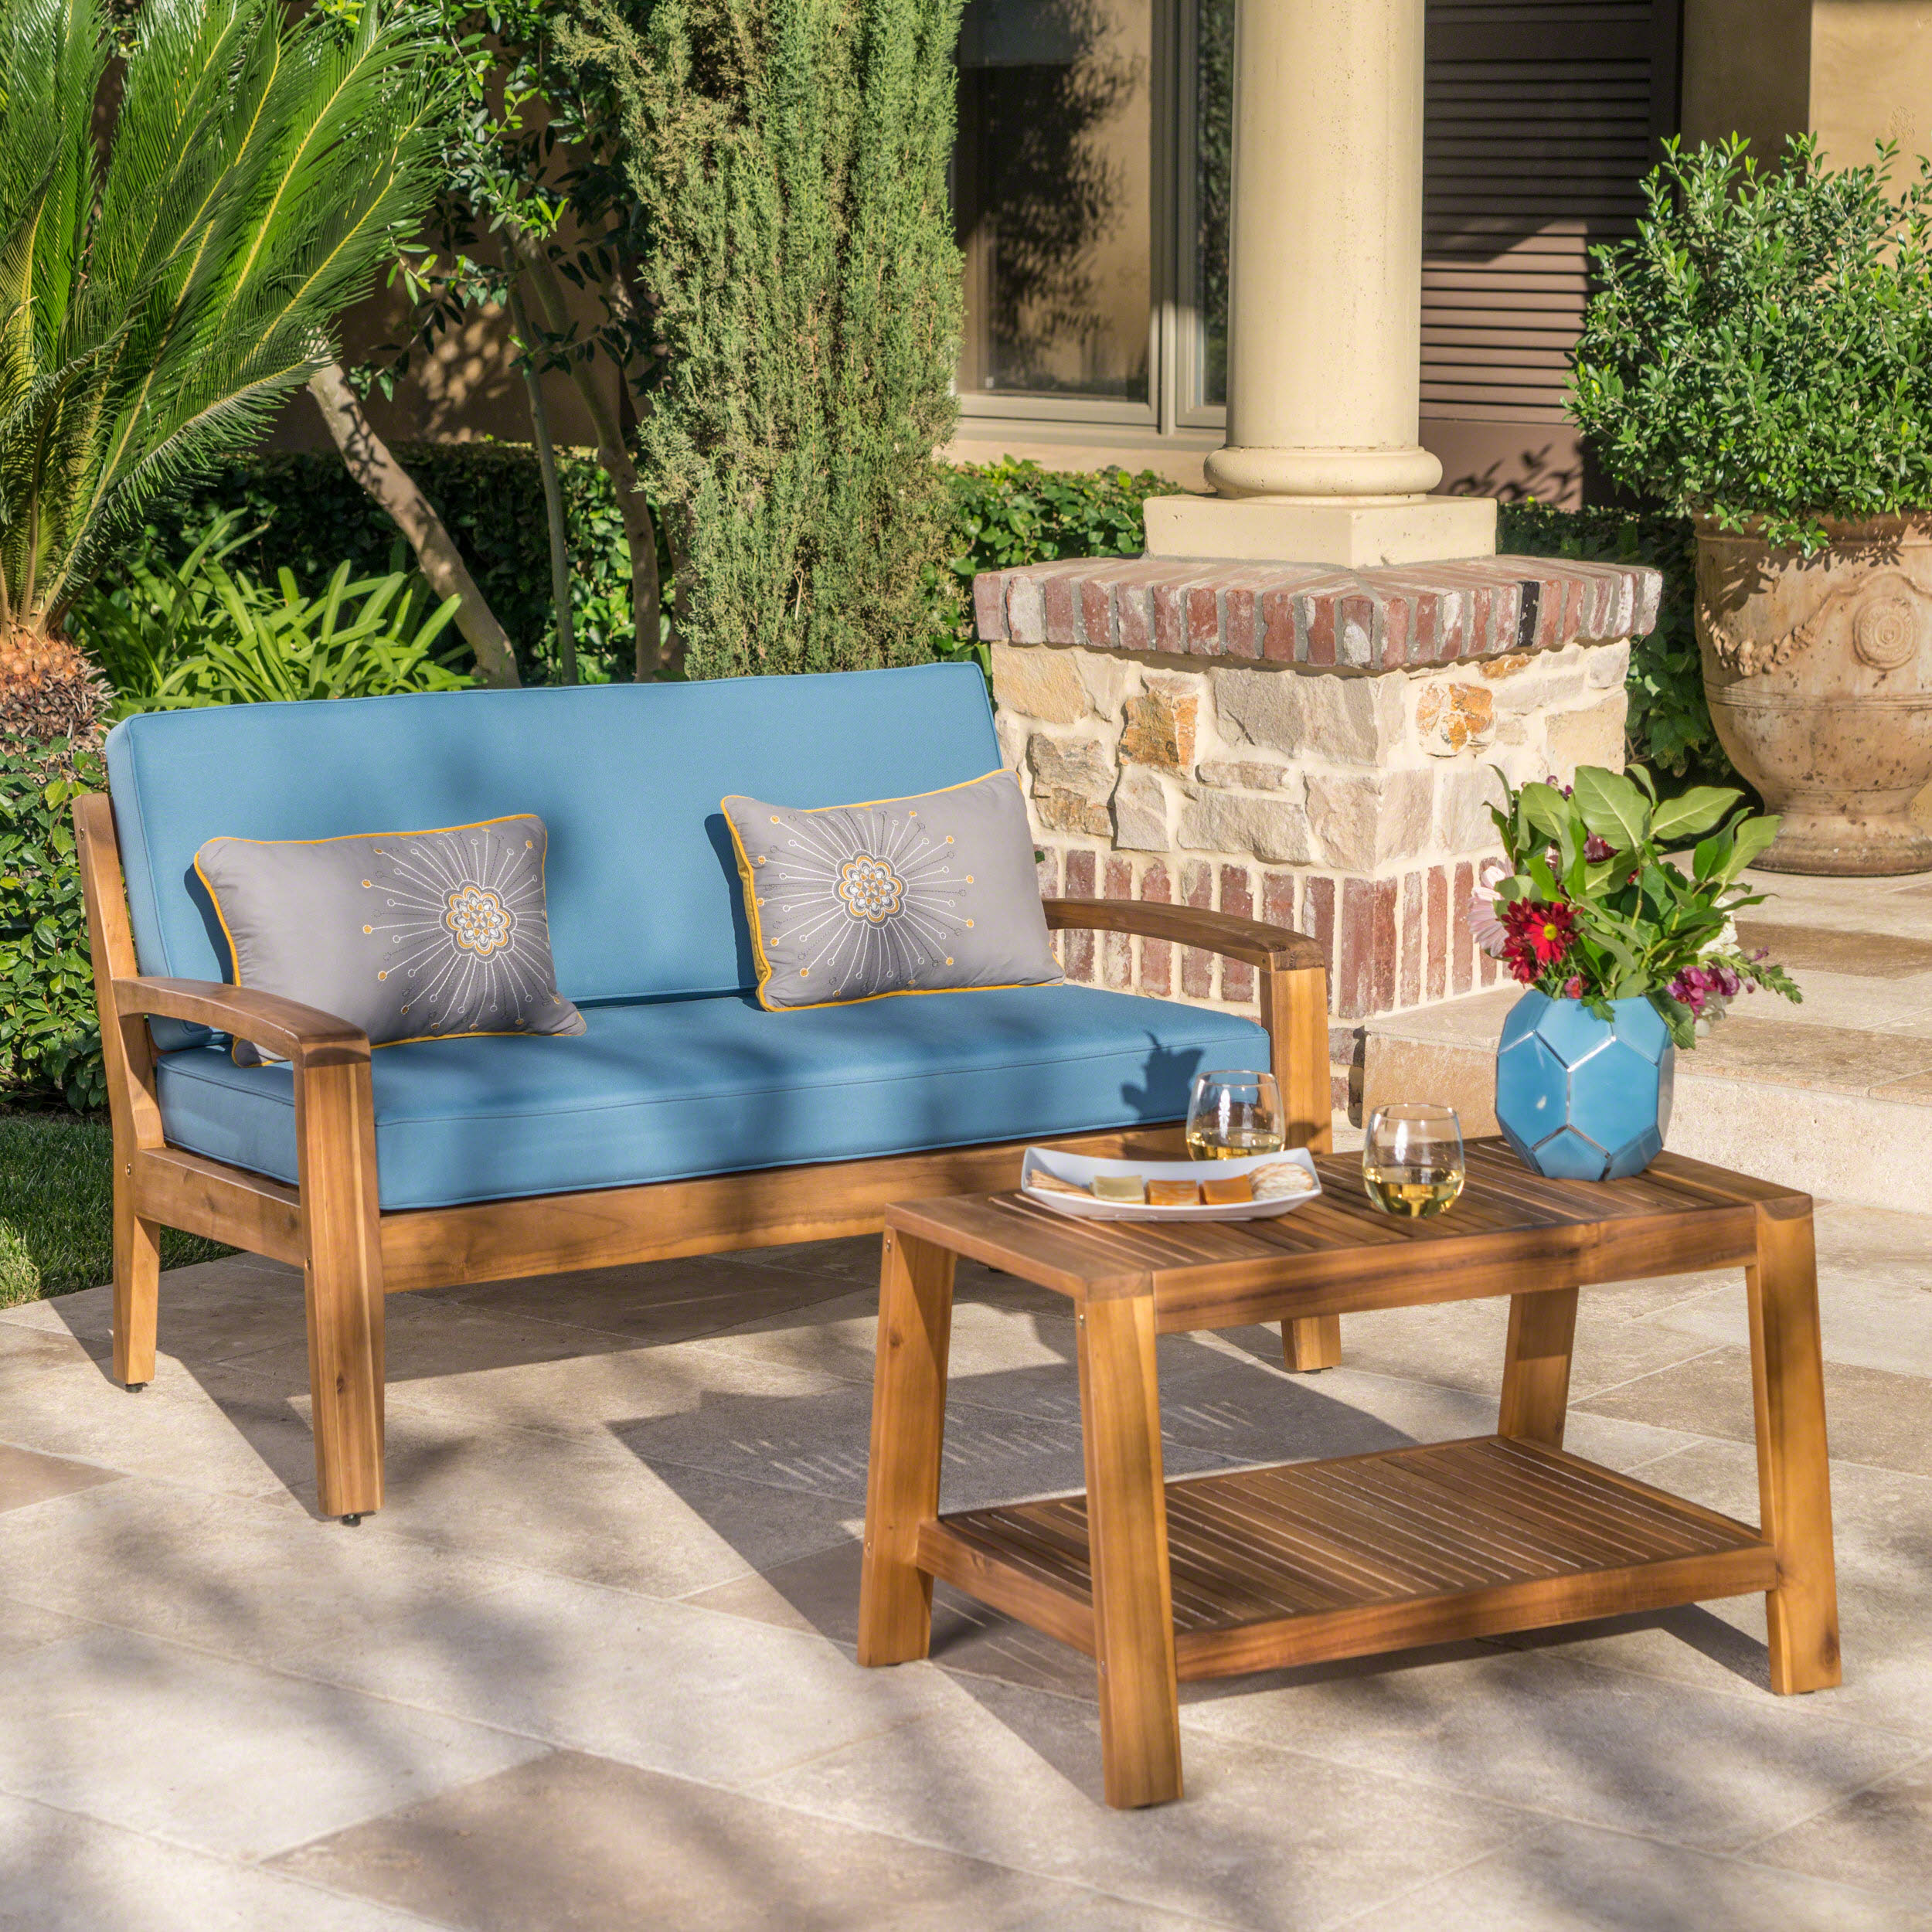 Wilcox Outdoor Acacia Wood Loveseat and Coffee Table Set with Cushions, Teak, Blue by Noble House